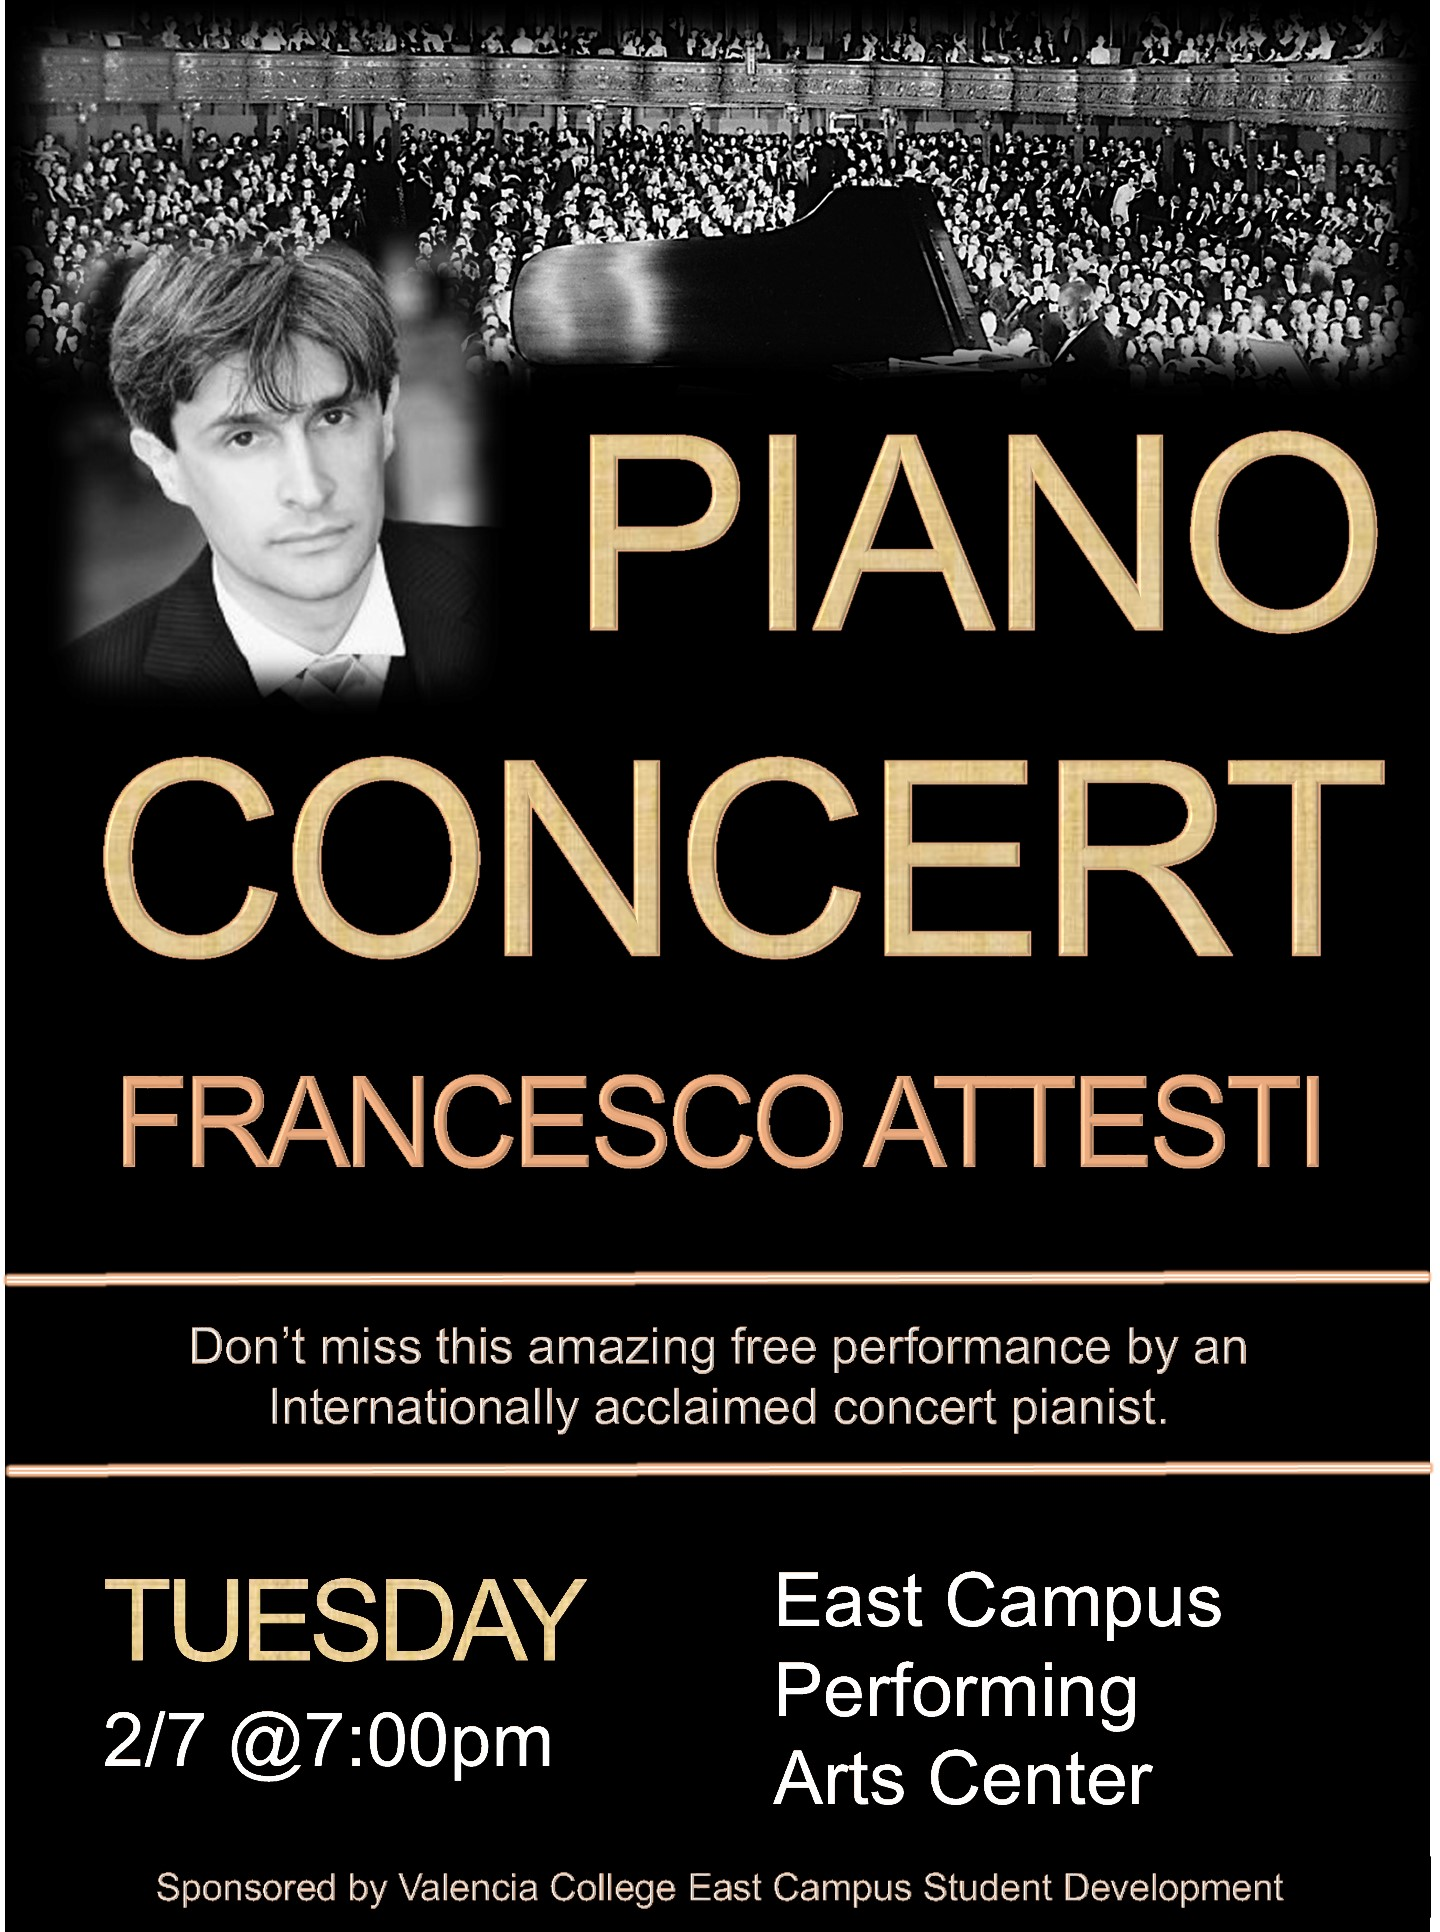 Concert poster-free piano concert